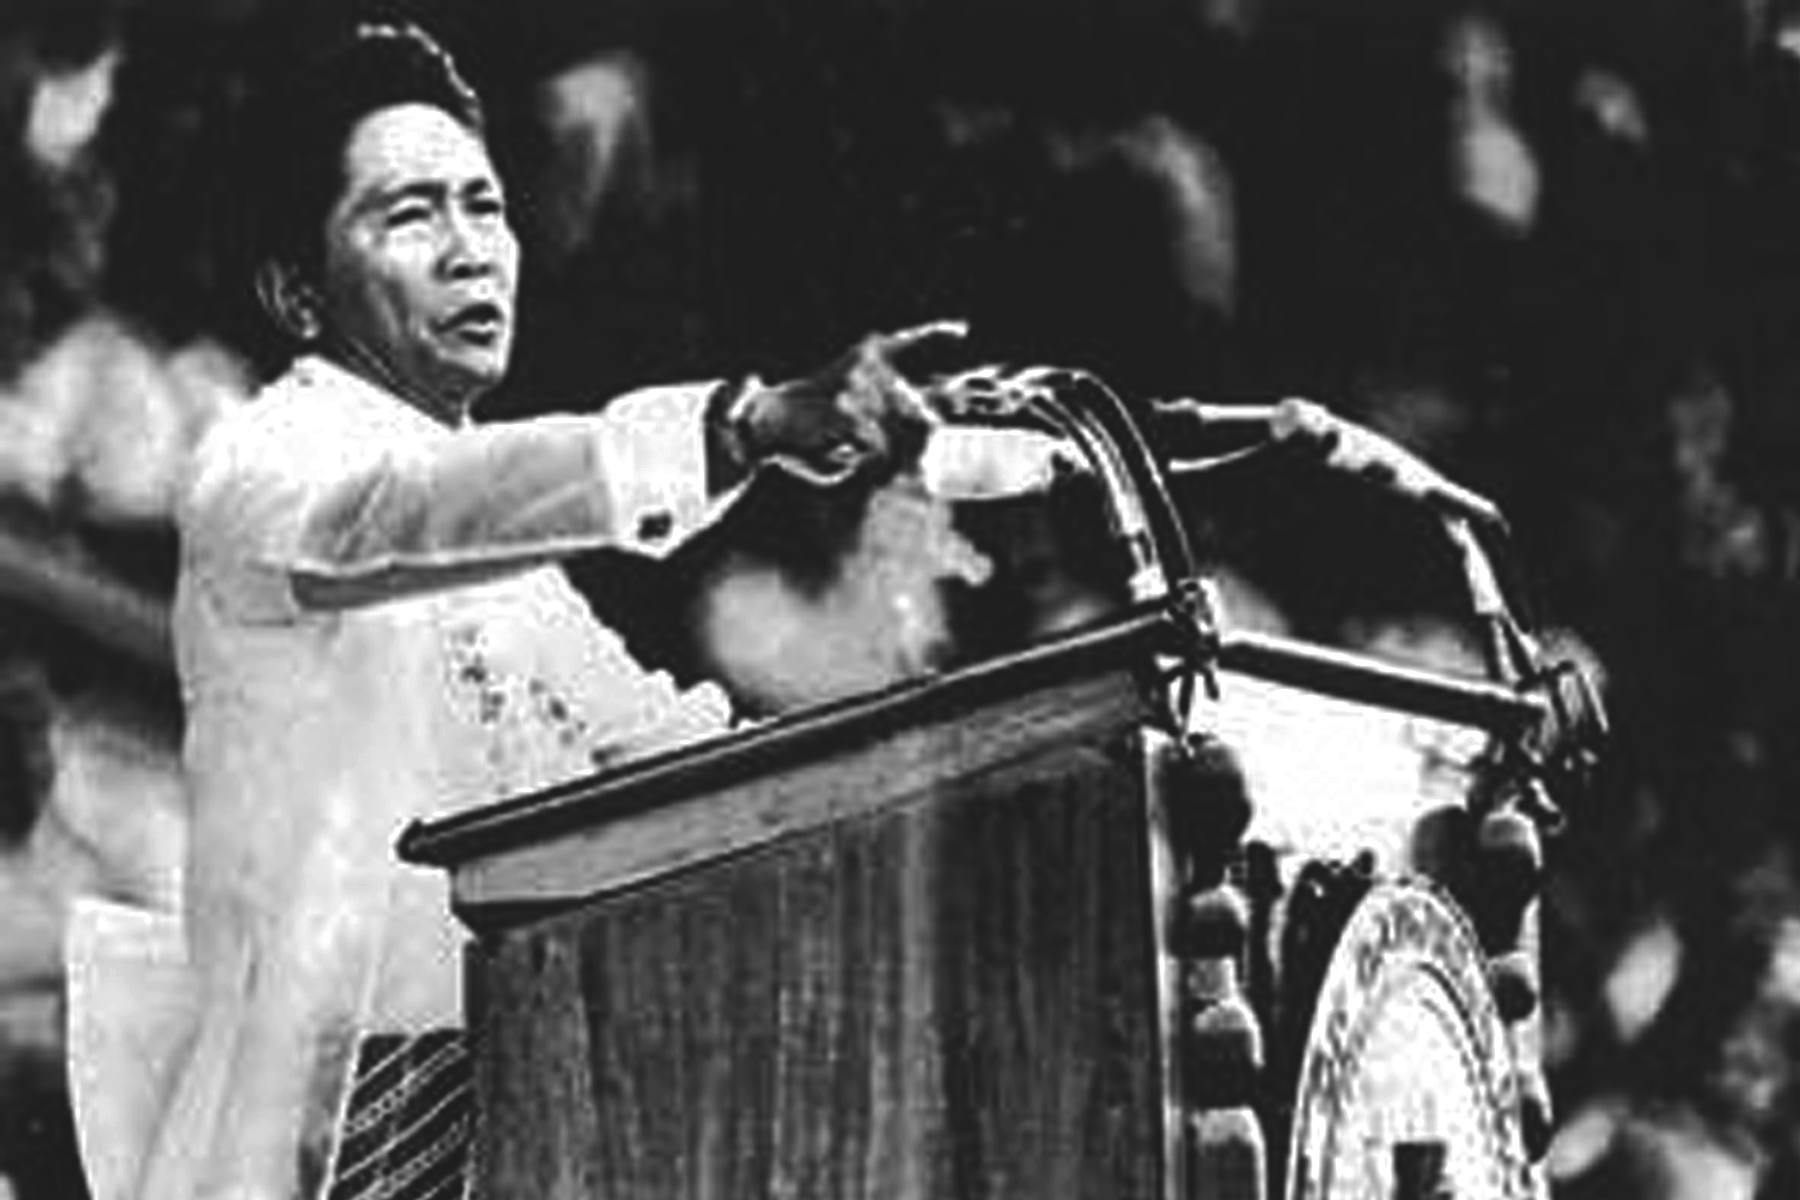 The Man Behind Martial Law